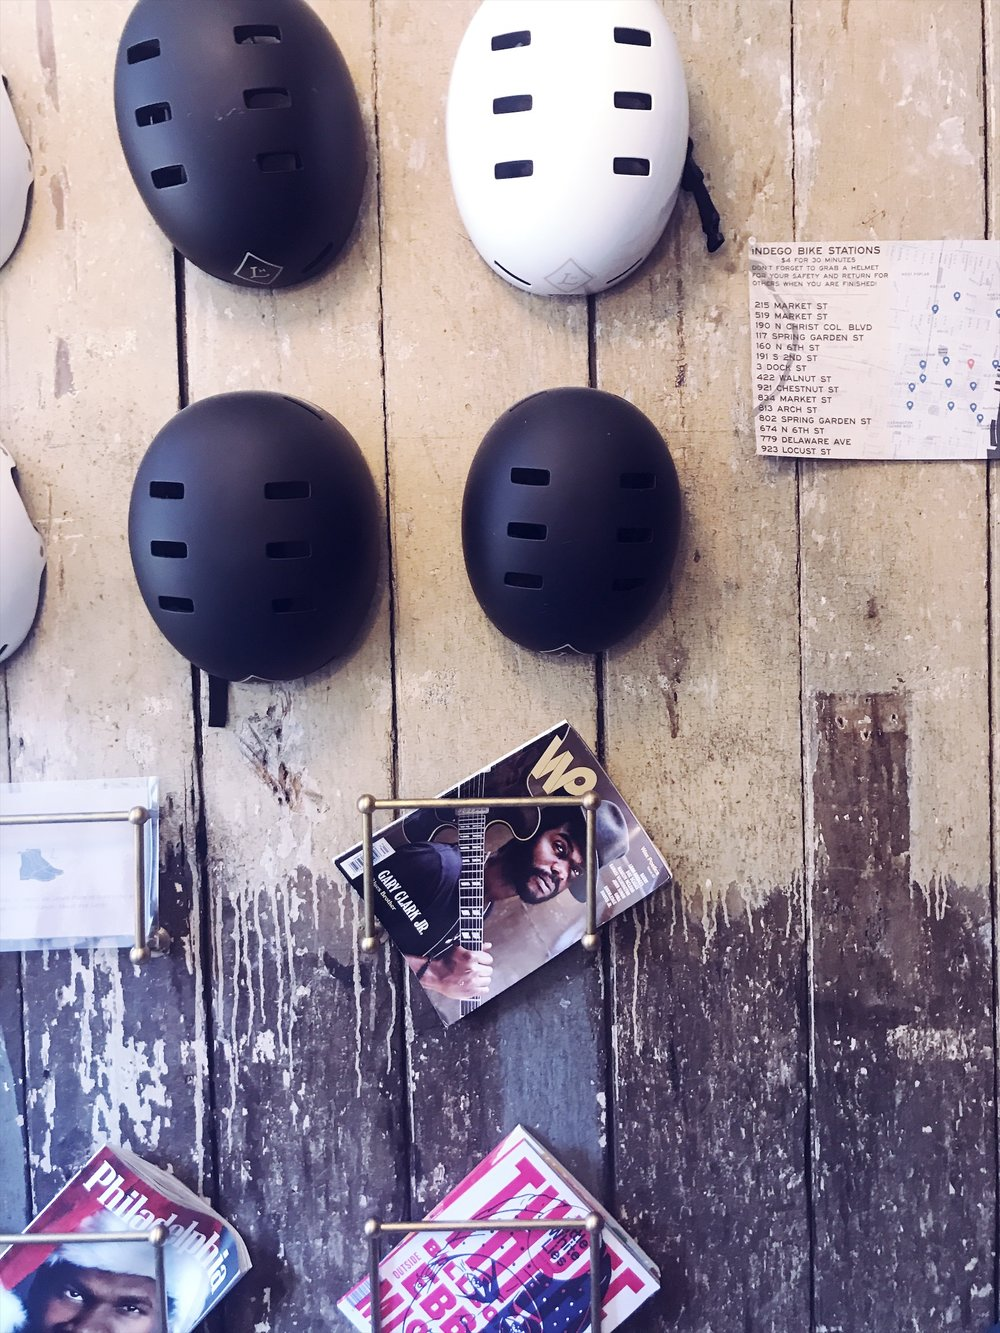 Lokal Hotel Bike Bicycle Helmets - Photo by Nicole Fichera